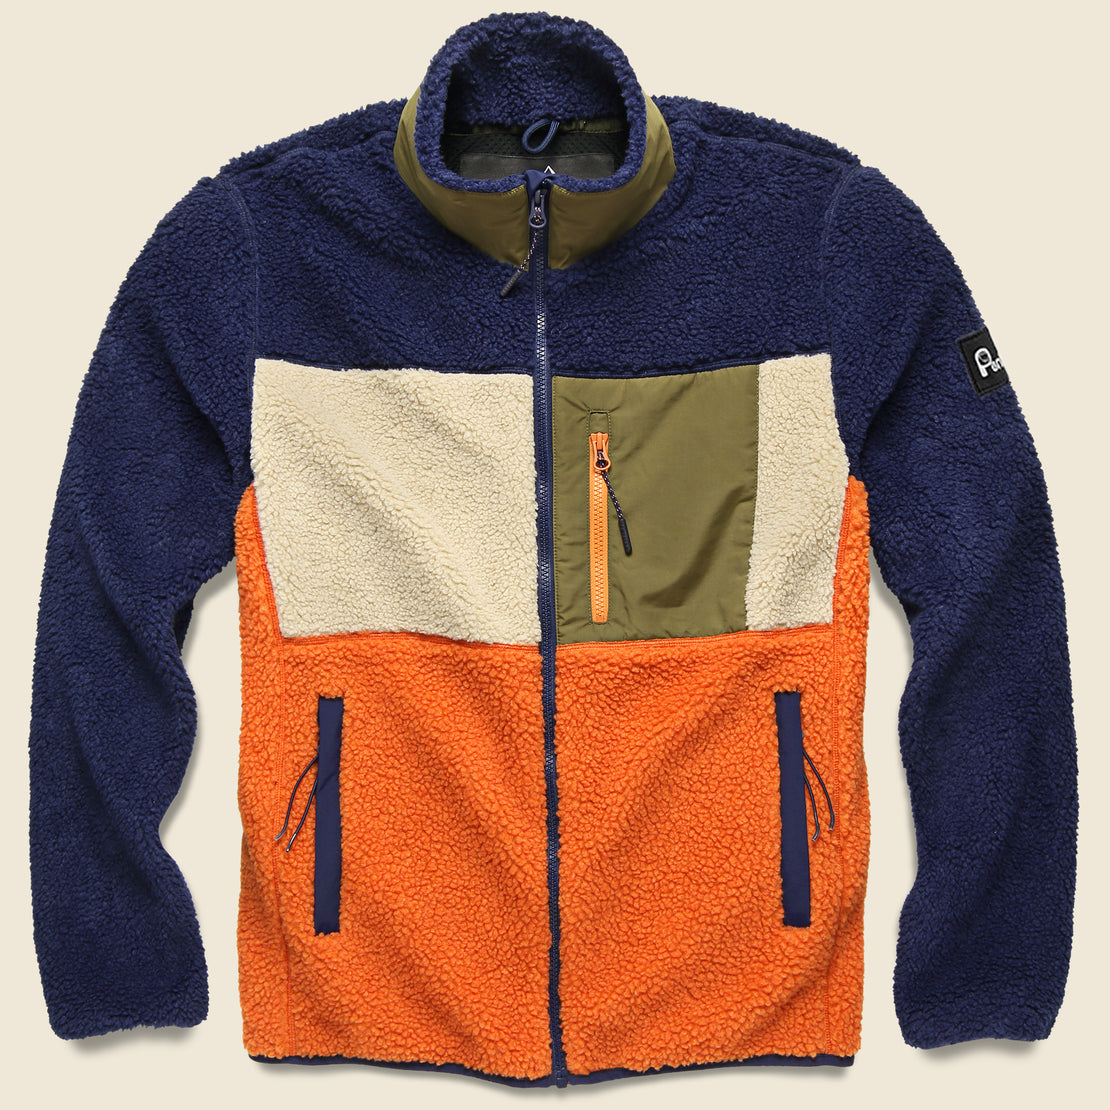 Penfield Mattawa Colorblock Fleece Jacket - Outdoor Orange